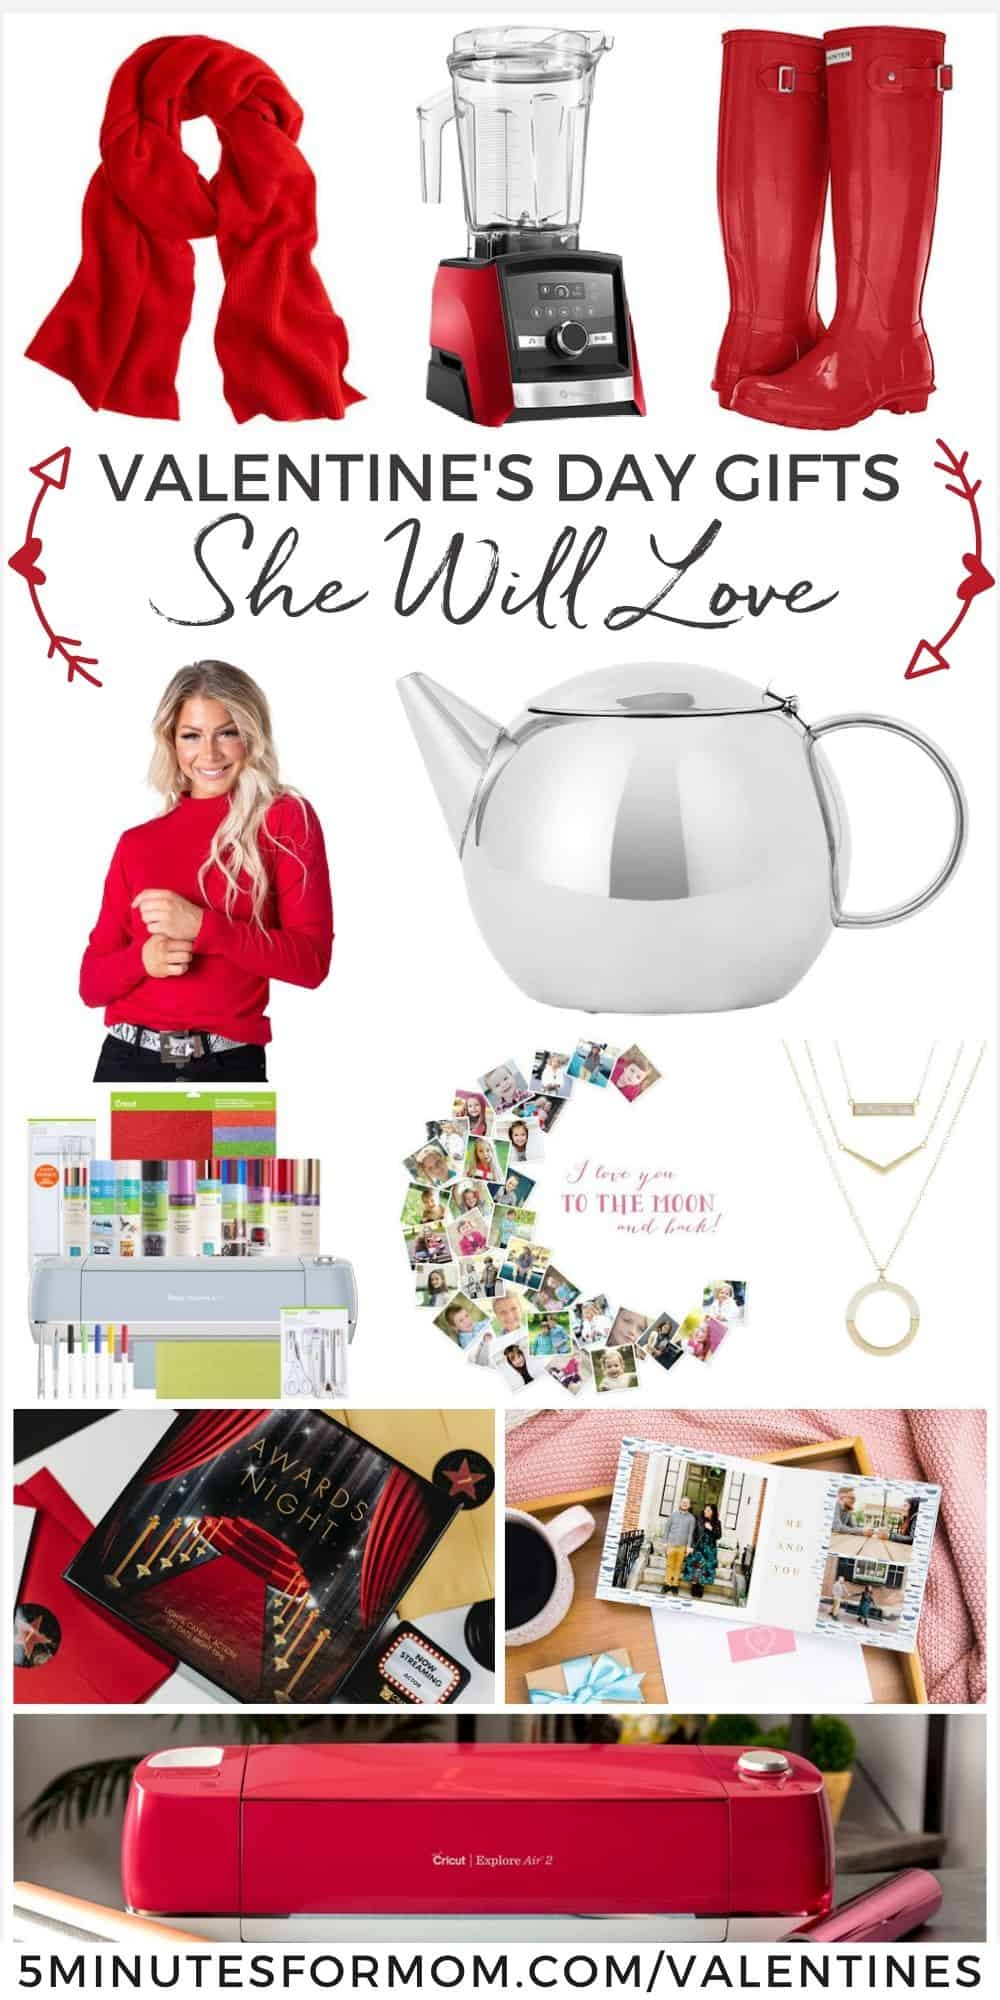 Valentines Day Gifts She Will Love - Gift Ideas for Women